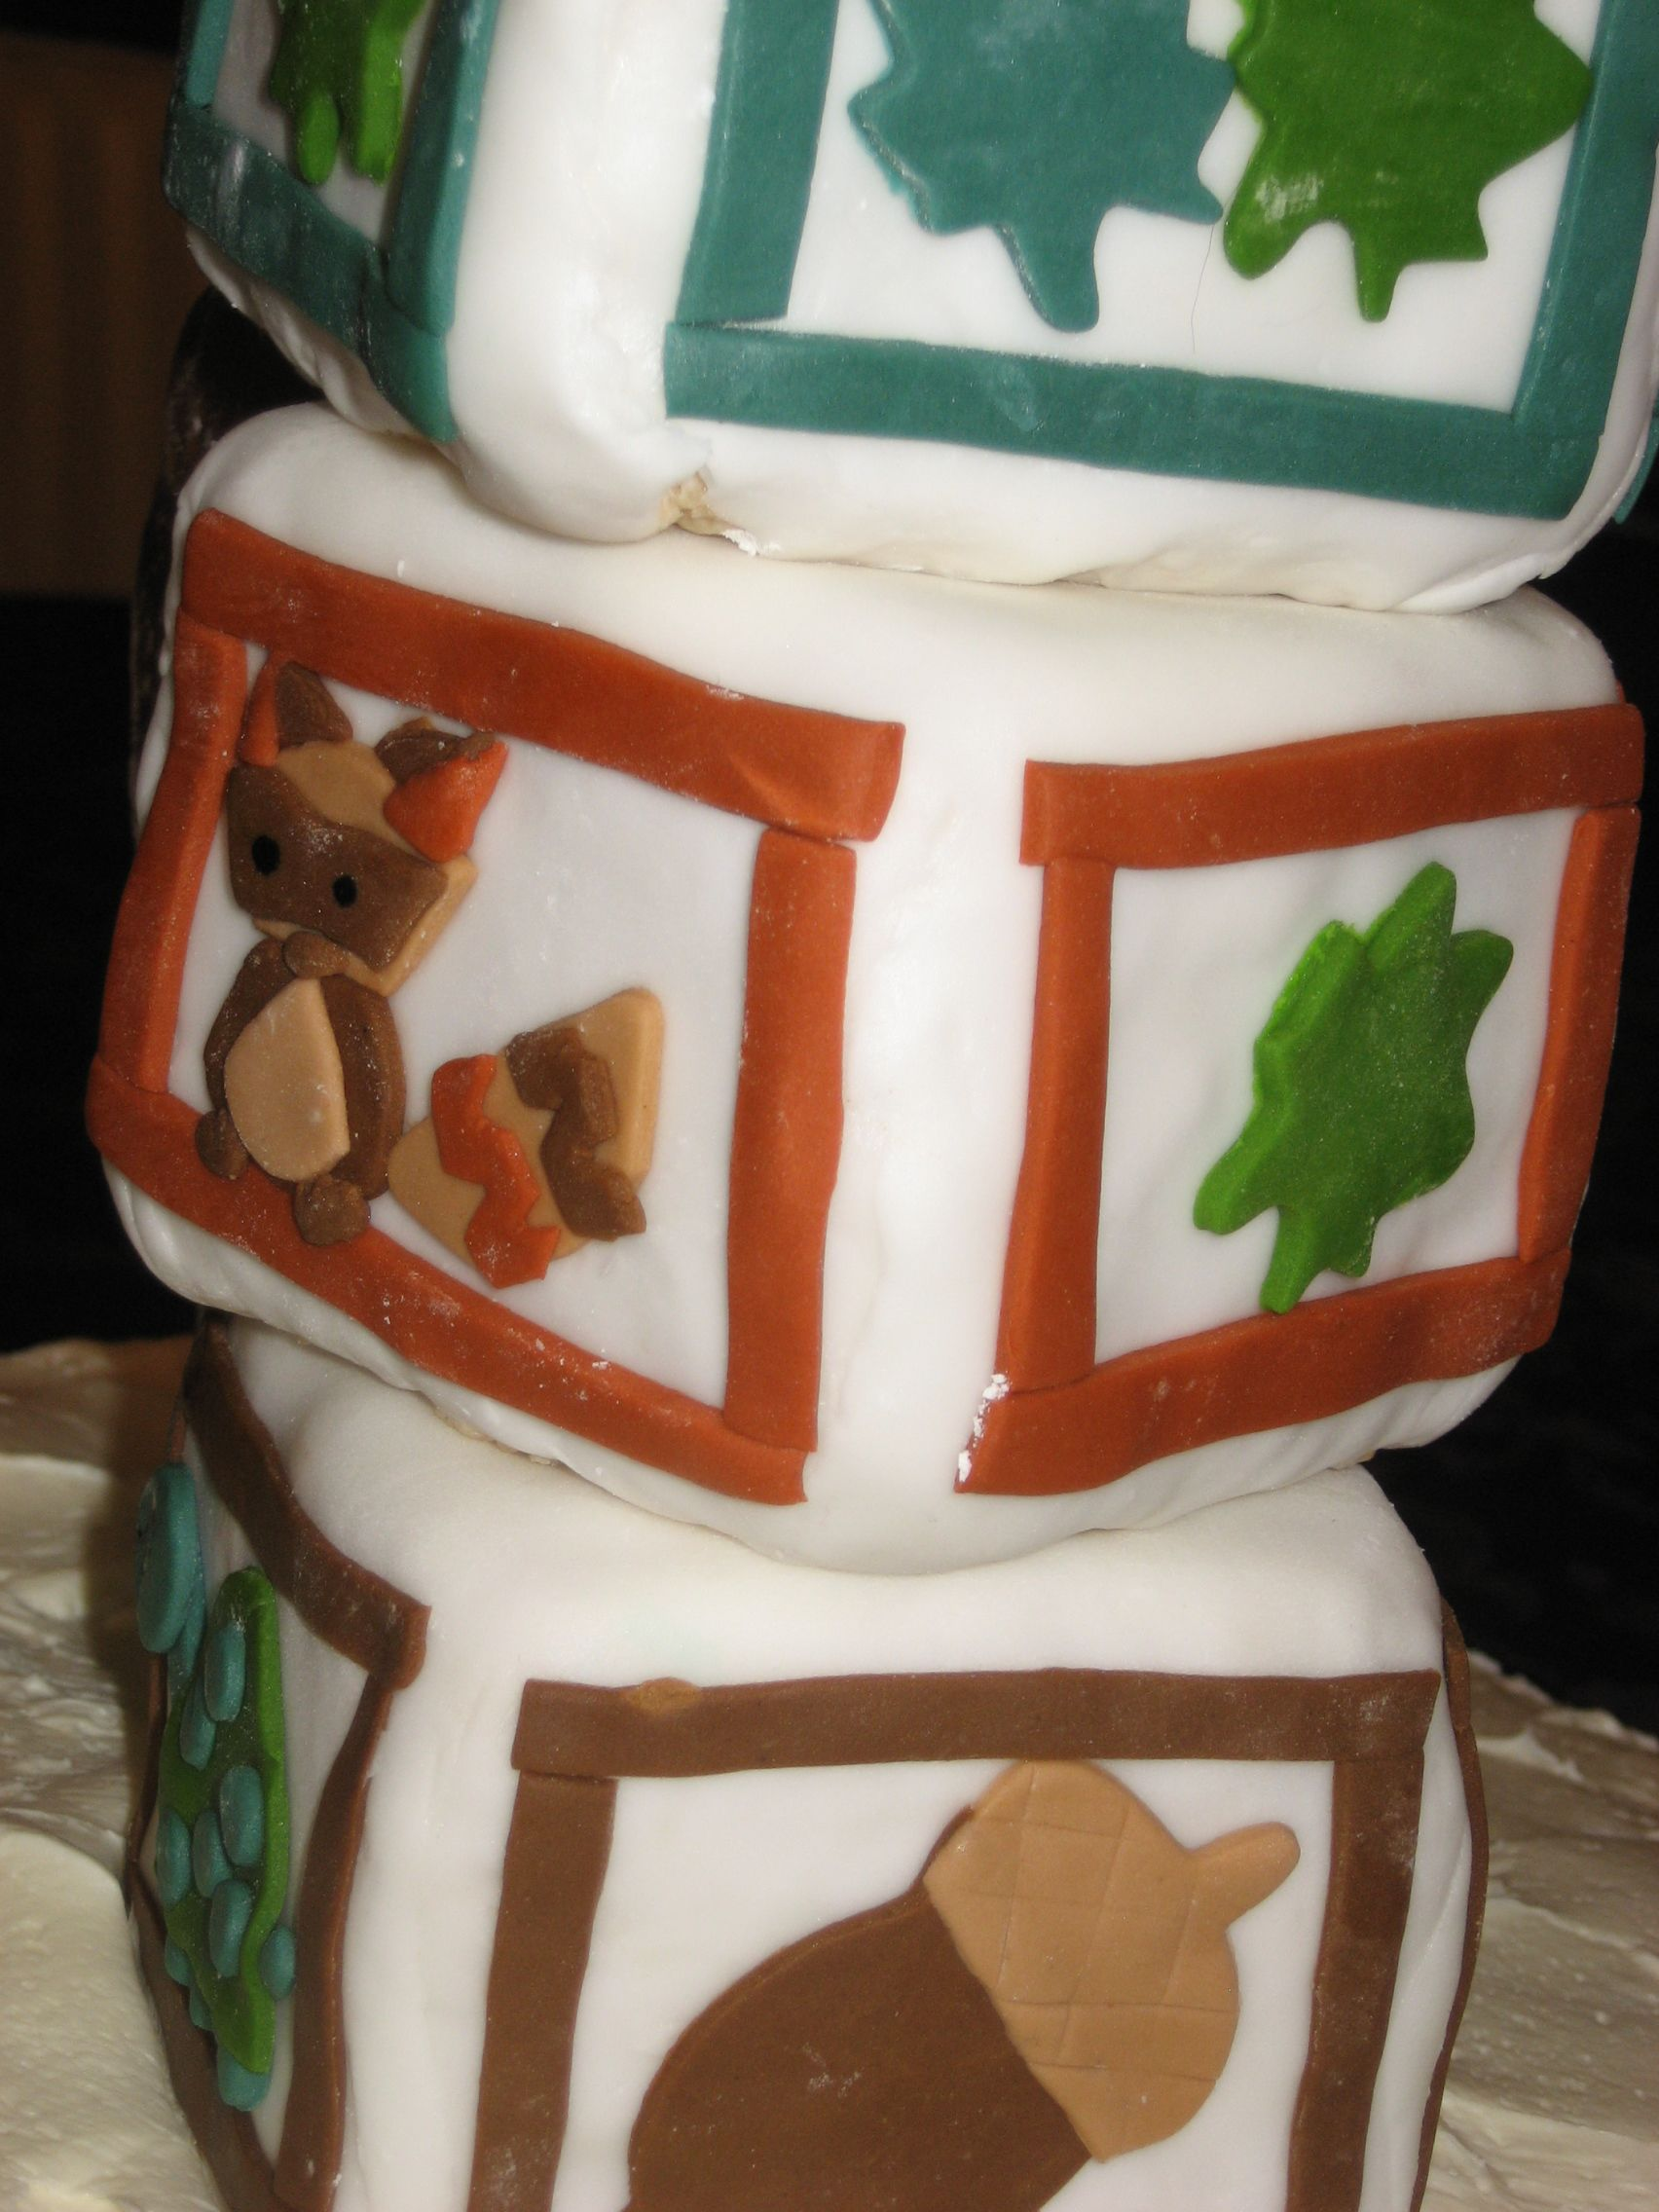 The back of the woodland baby cake